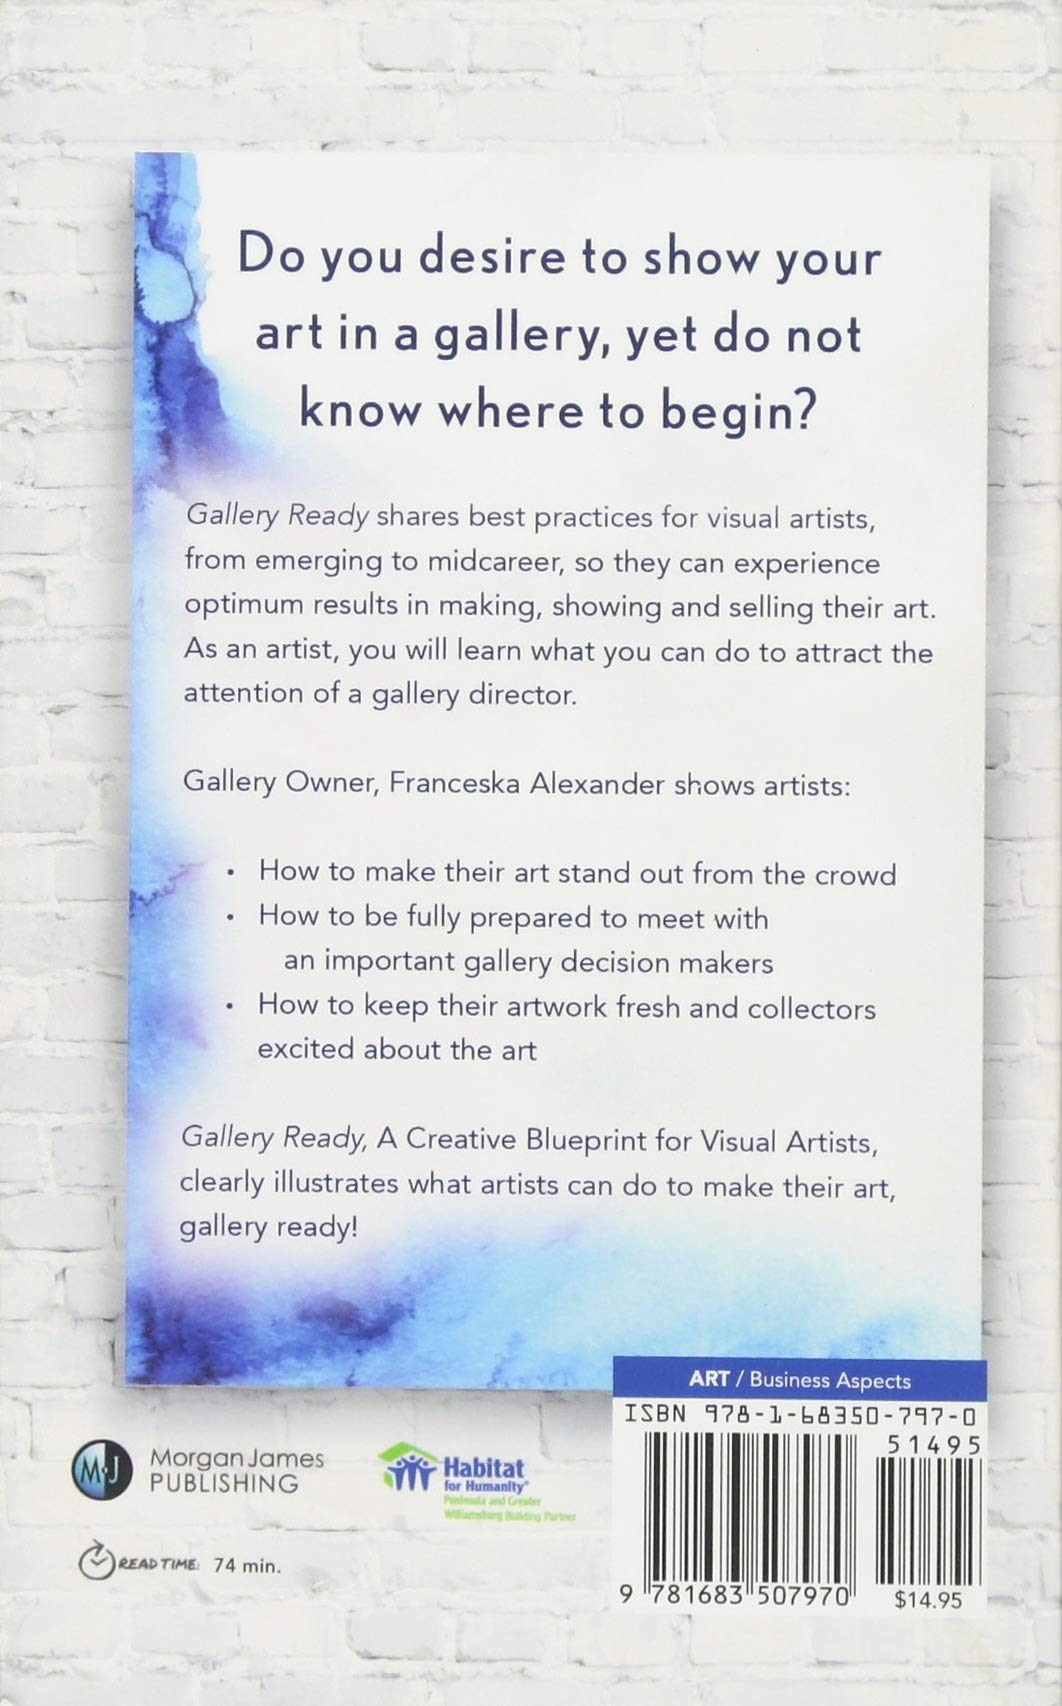 Amazon gallery ready a creative blueprint for visual artists amazon gallery ready a creative blueprint for visual artists 9781683507970 franceska alexander books malvernweather Image collections